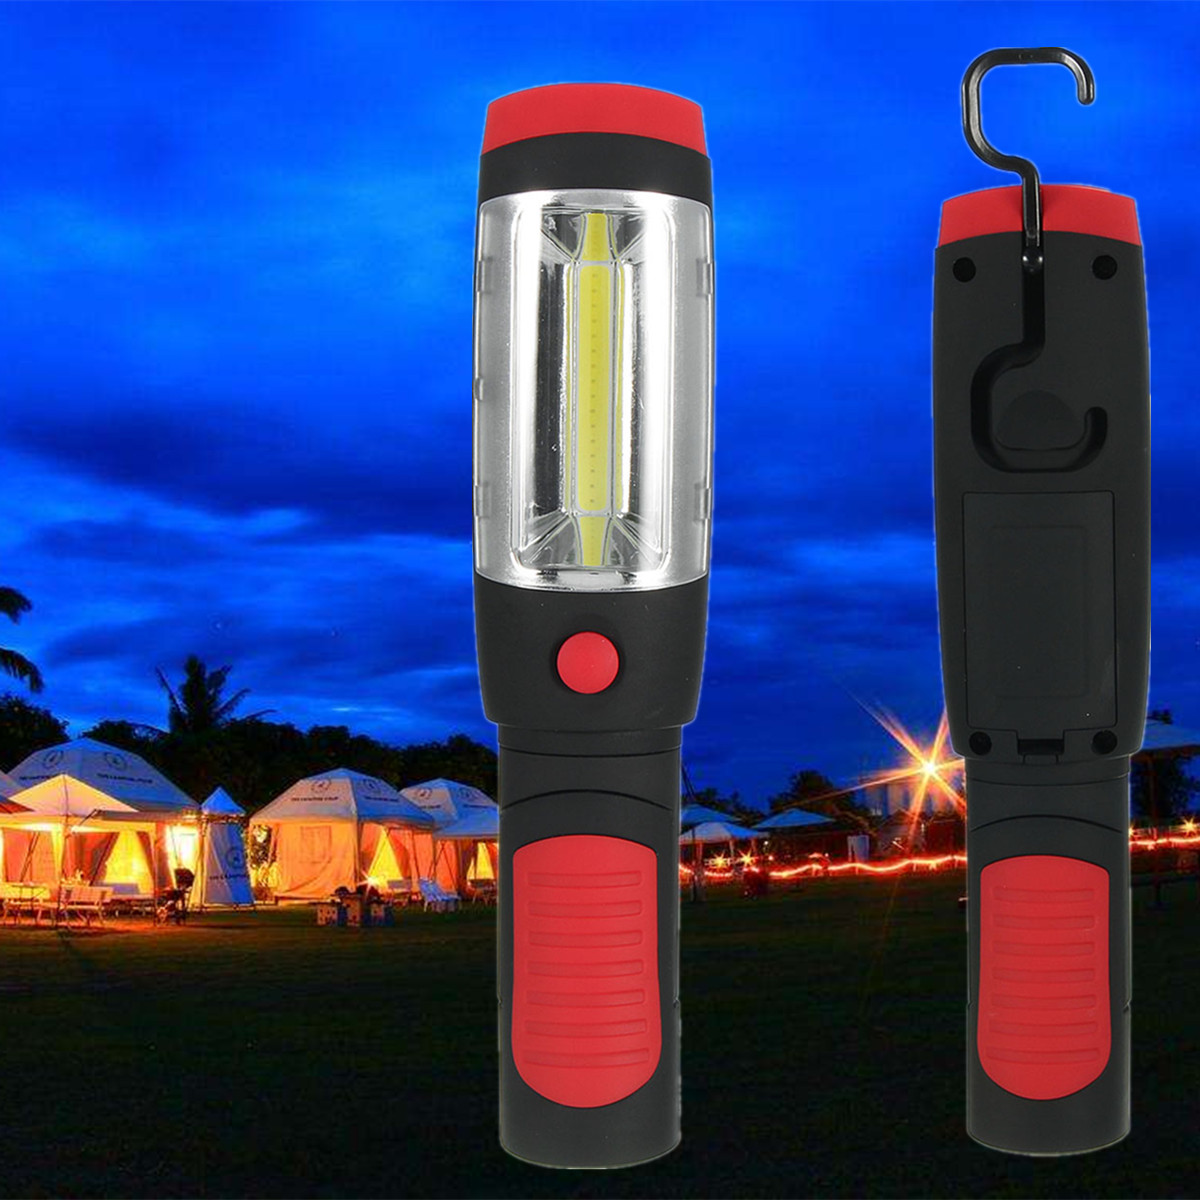 Led Flashlights Led Lighting Strict 3w Cob And 1w Led Flashlight Inspection Lamp Torch Work Emergency Light With Magnetic Hook For Camping Fishing Repair Car Skillful Manufacture